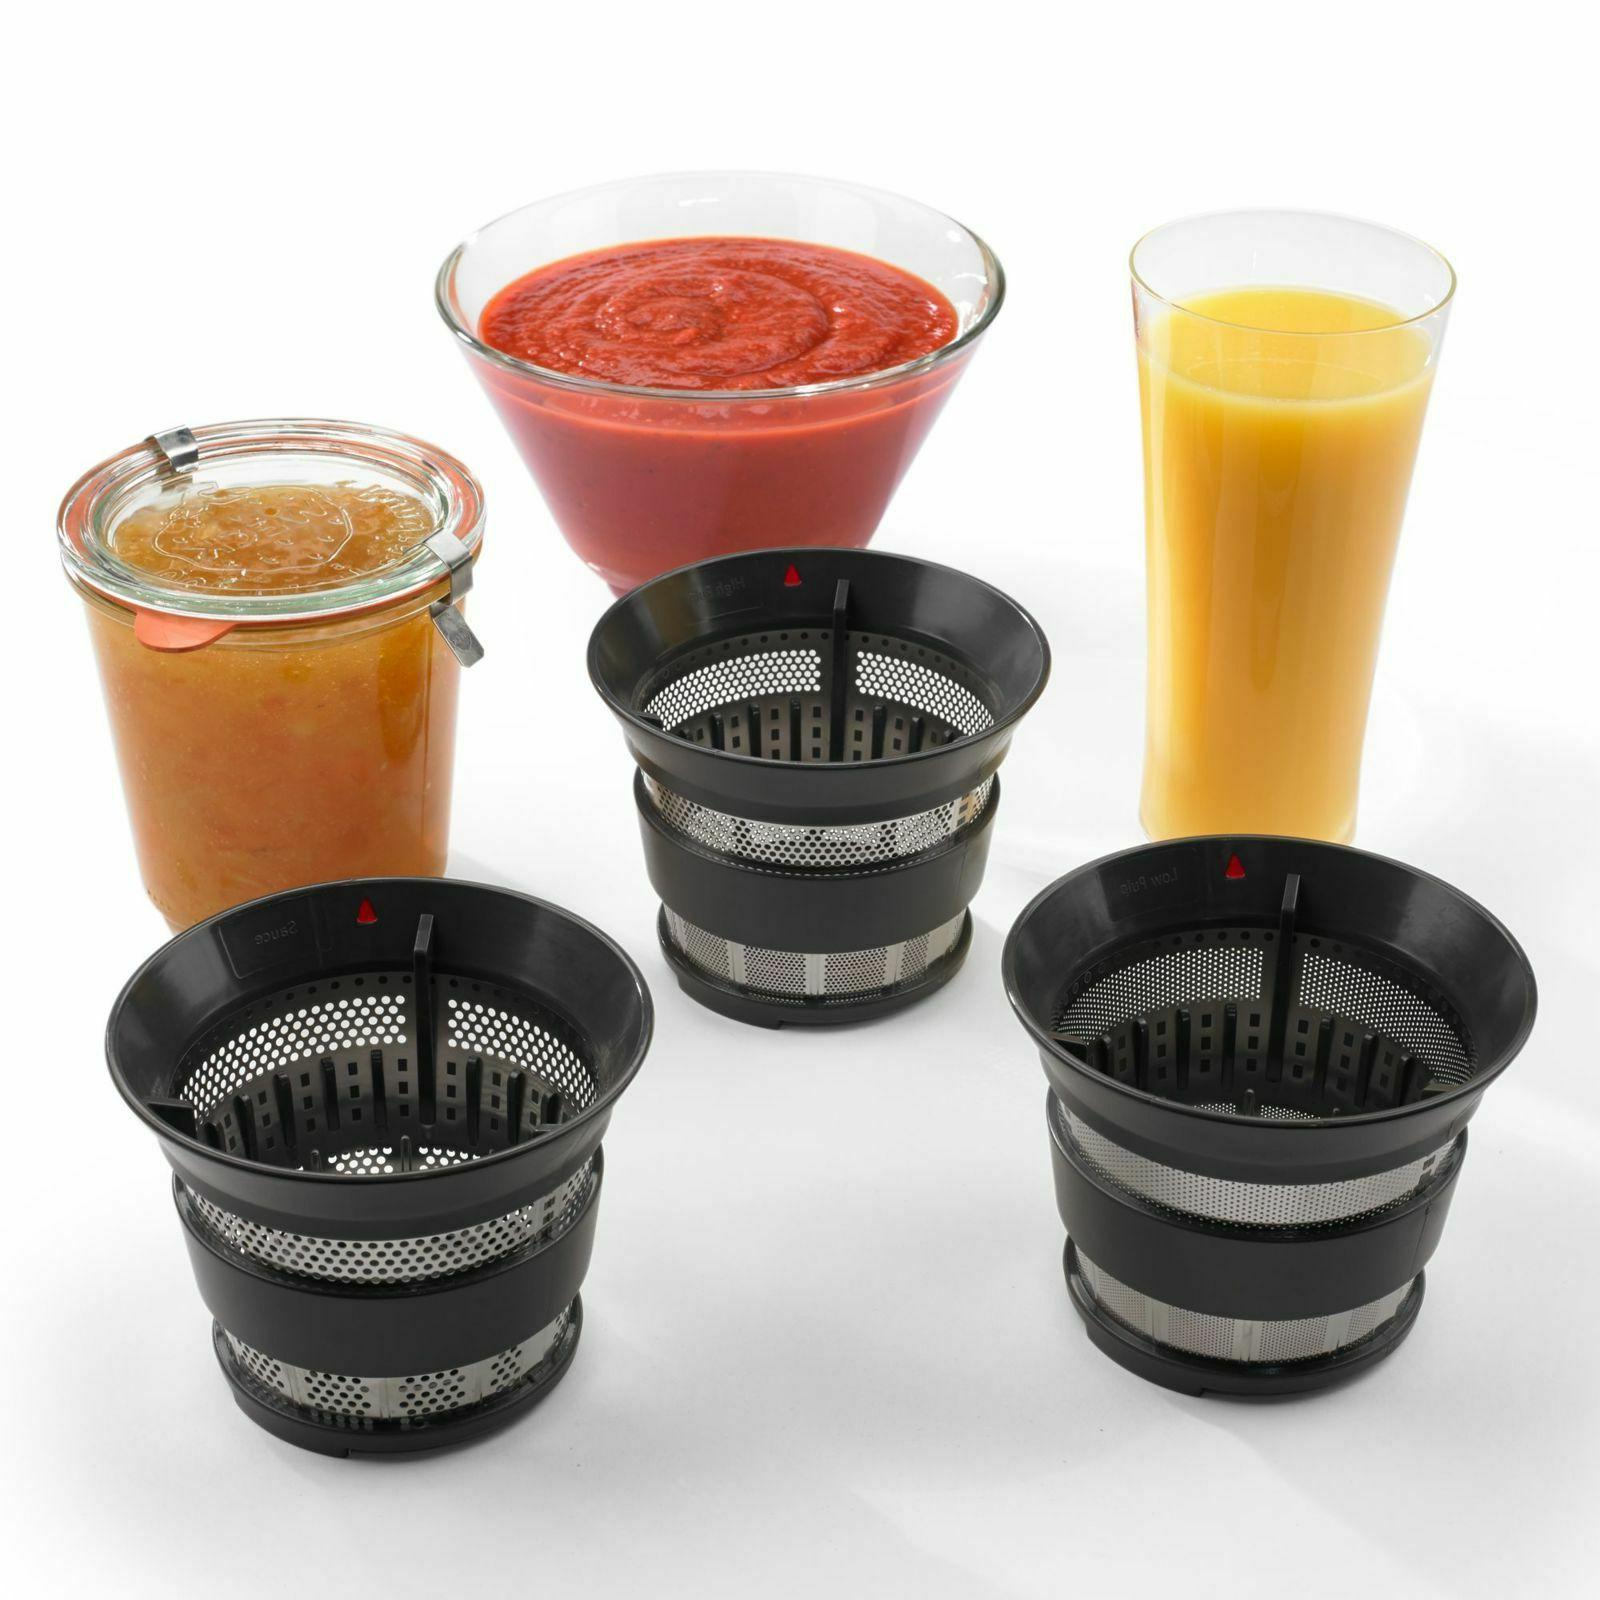 KitchenAid Juicer Sauce Attachment for Stand Mixer Compact